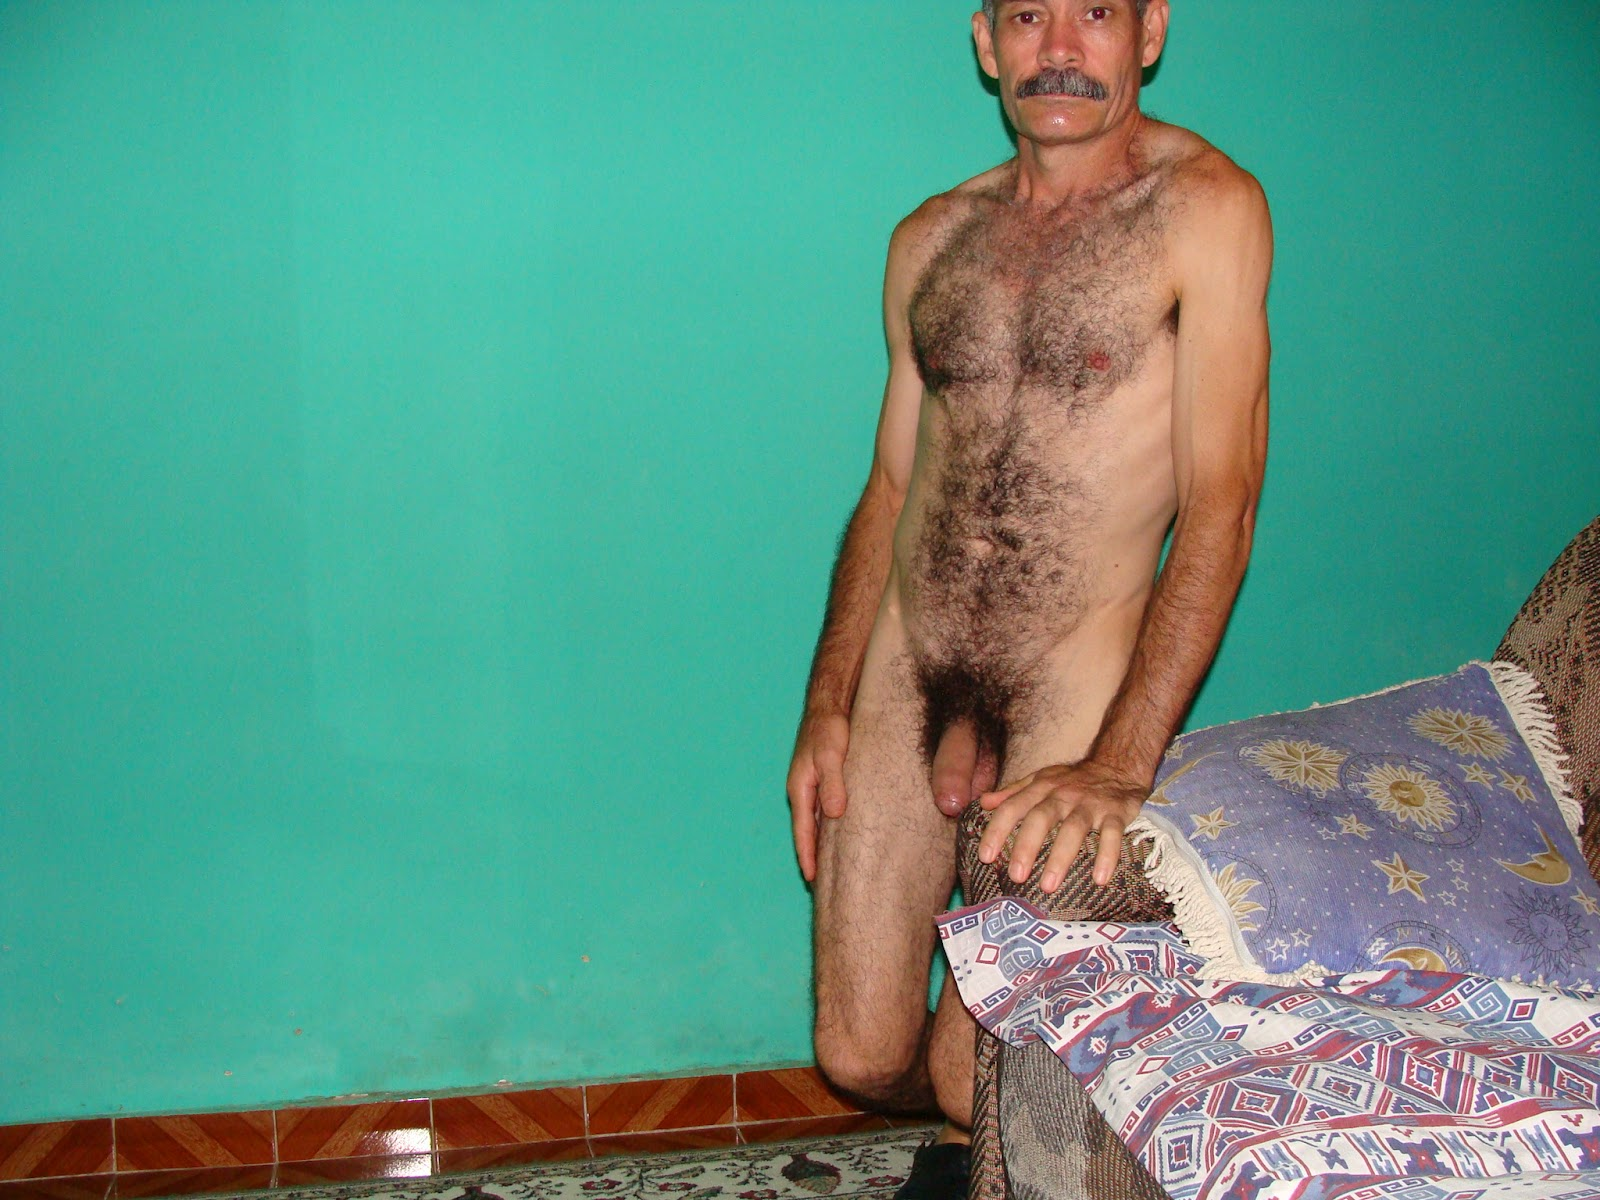 Man having old Hairy sex naked